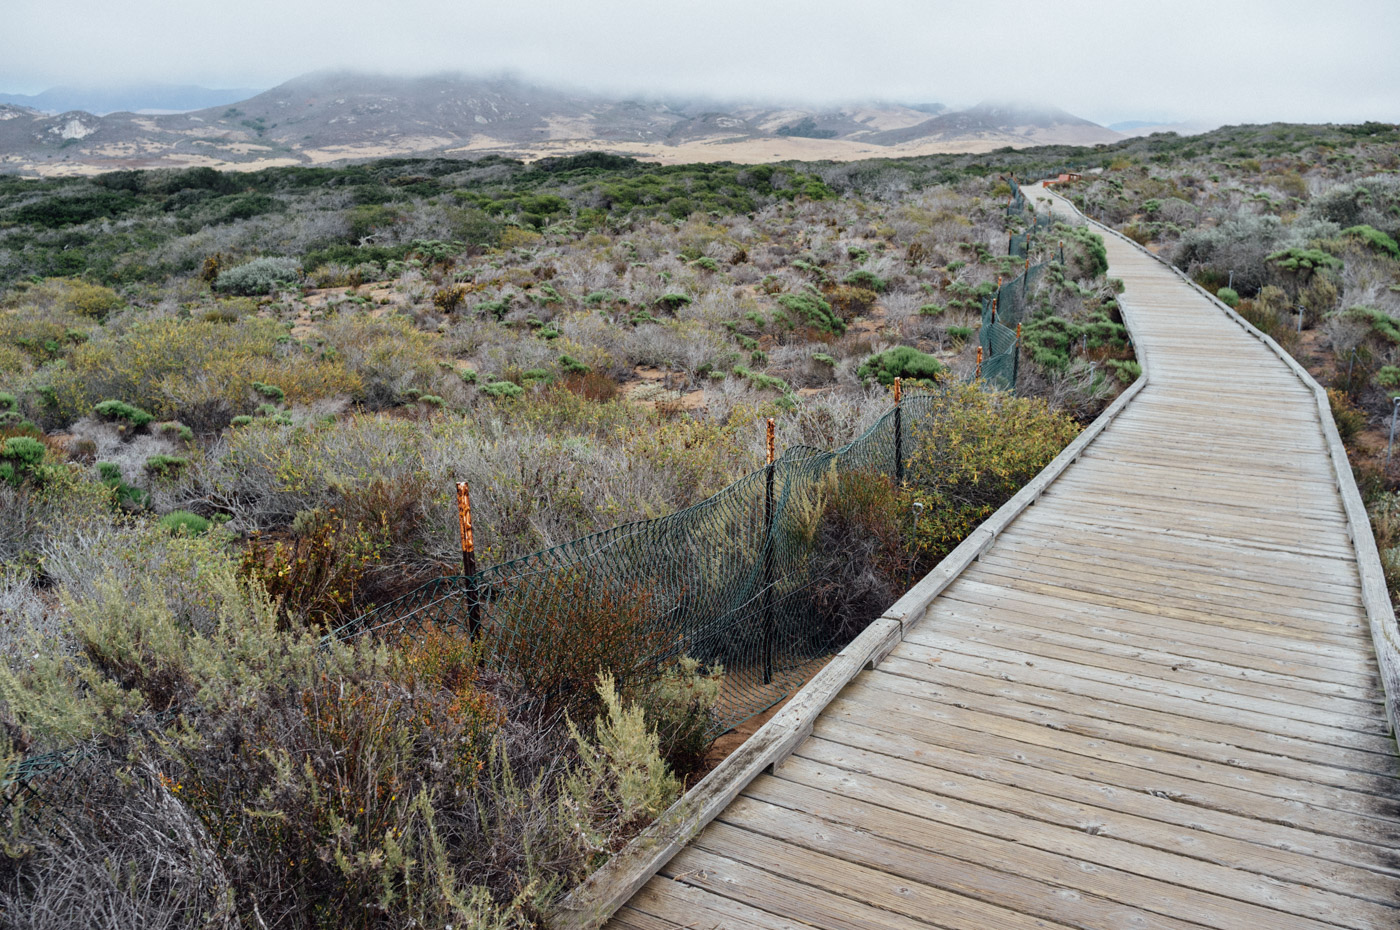 A wooden foot path leads you through the forest - Elfin Forest - Let's Photo Trip